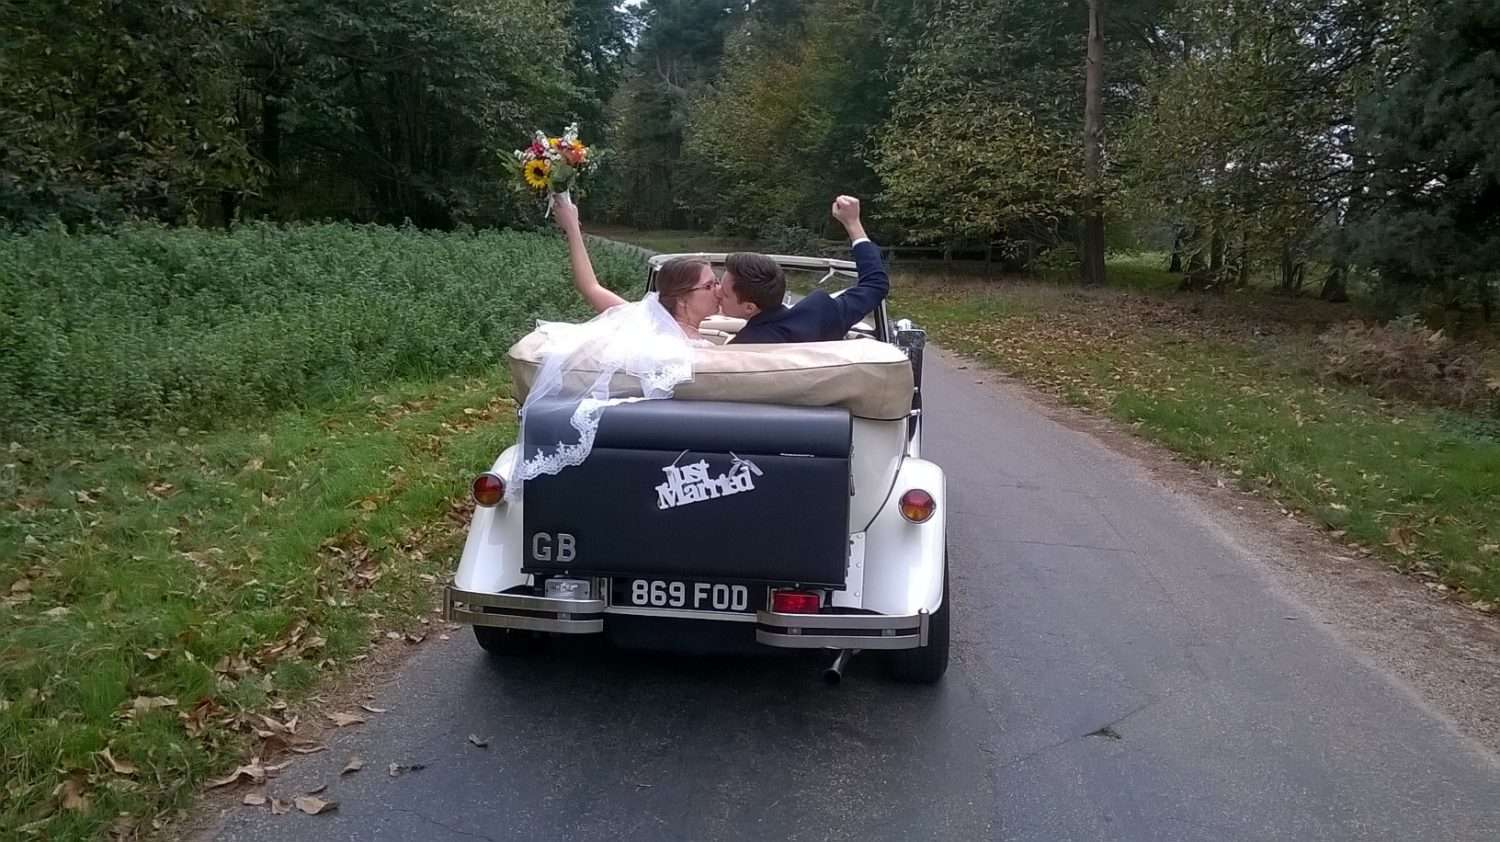 Bride & Groom driving down a road in a Beauford car with just married on the back.